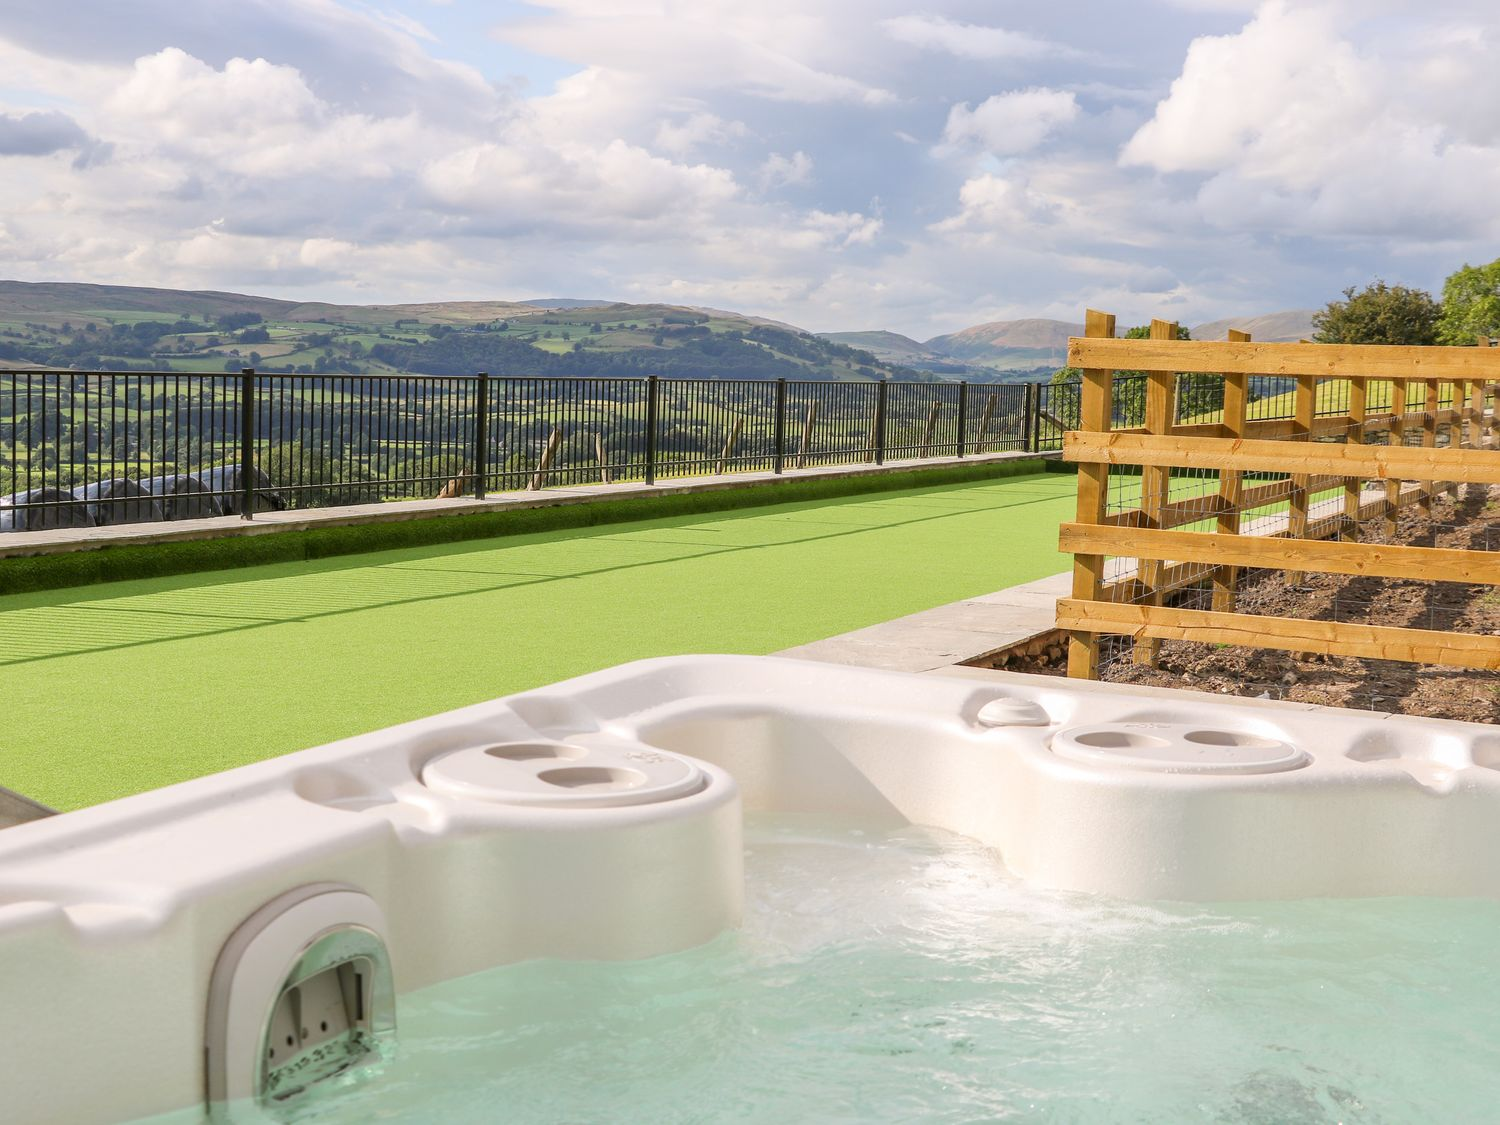 wonderful selection of cottages for larger groups - many pet friendly and with a Hot Tub